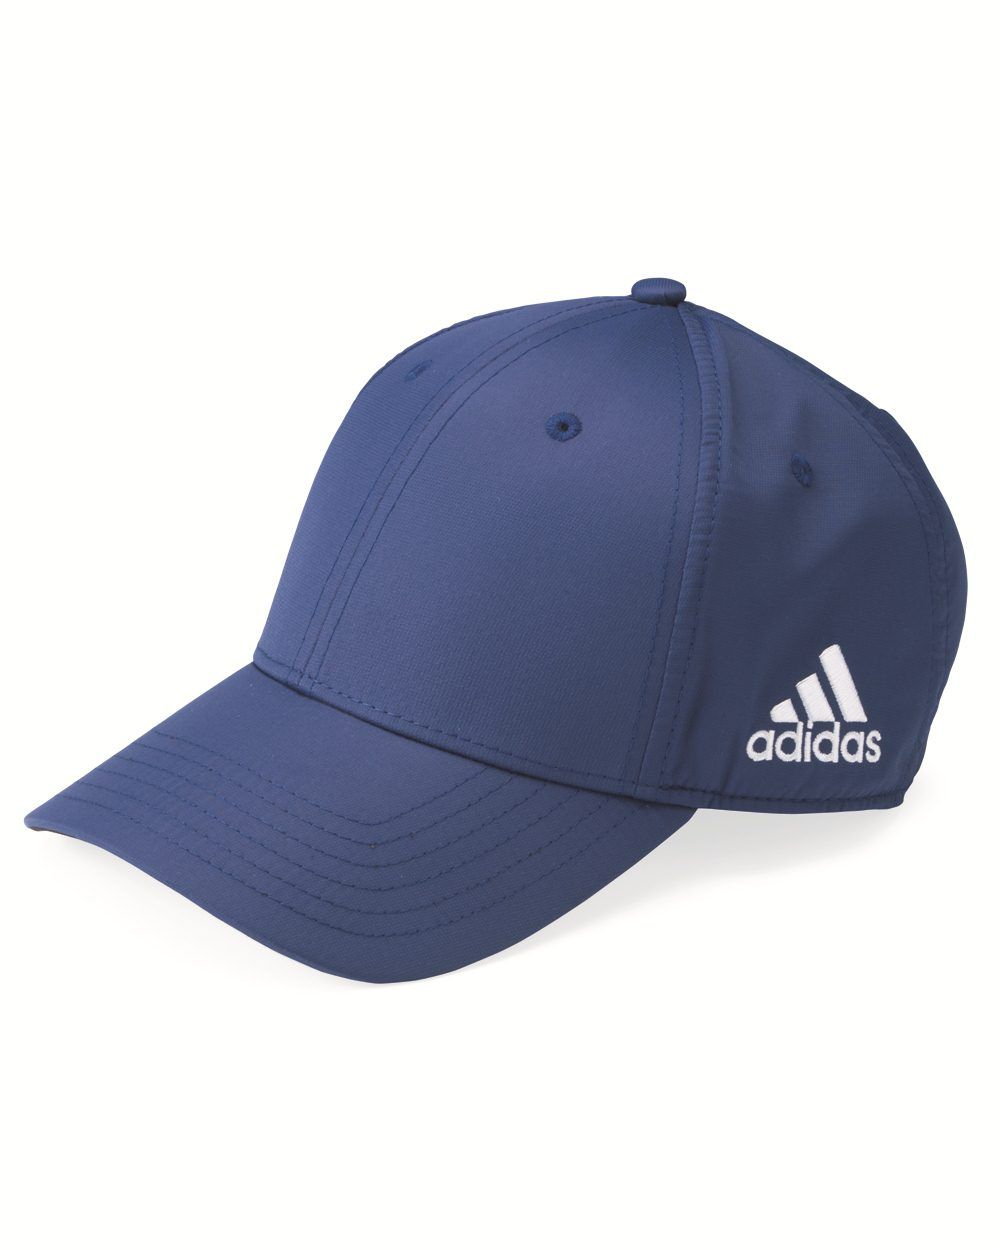 Adidas Core Performance Max Structured Cap Moisture Wicking Uv Protection Of 50 Upf Kepka